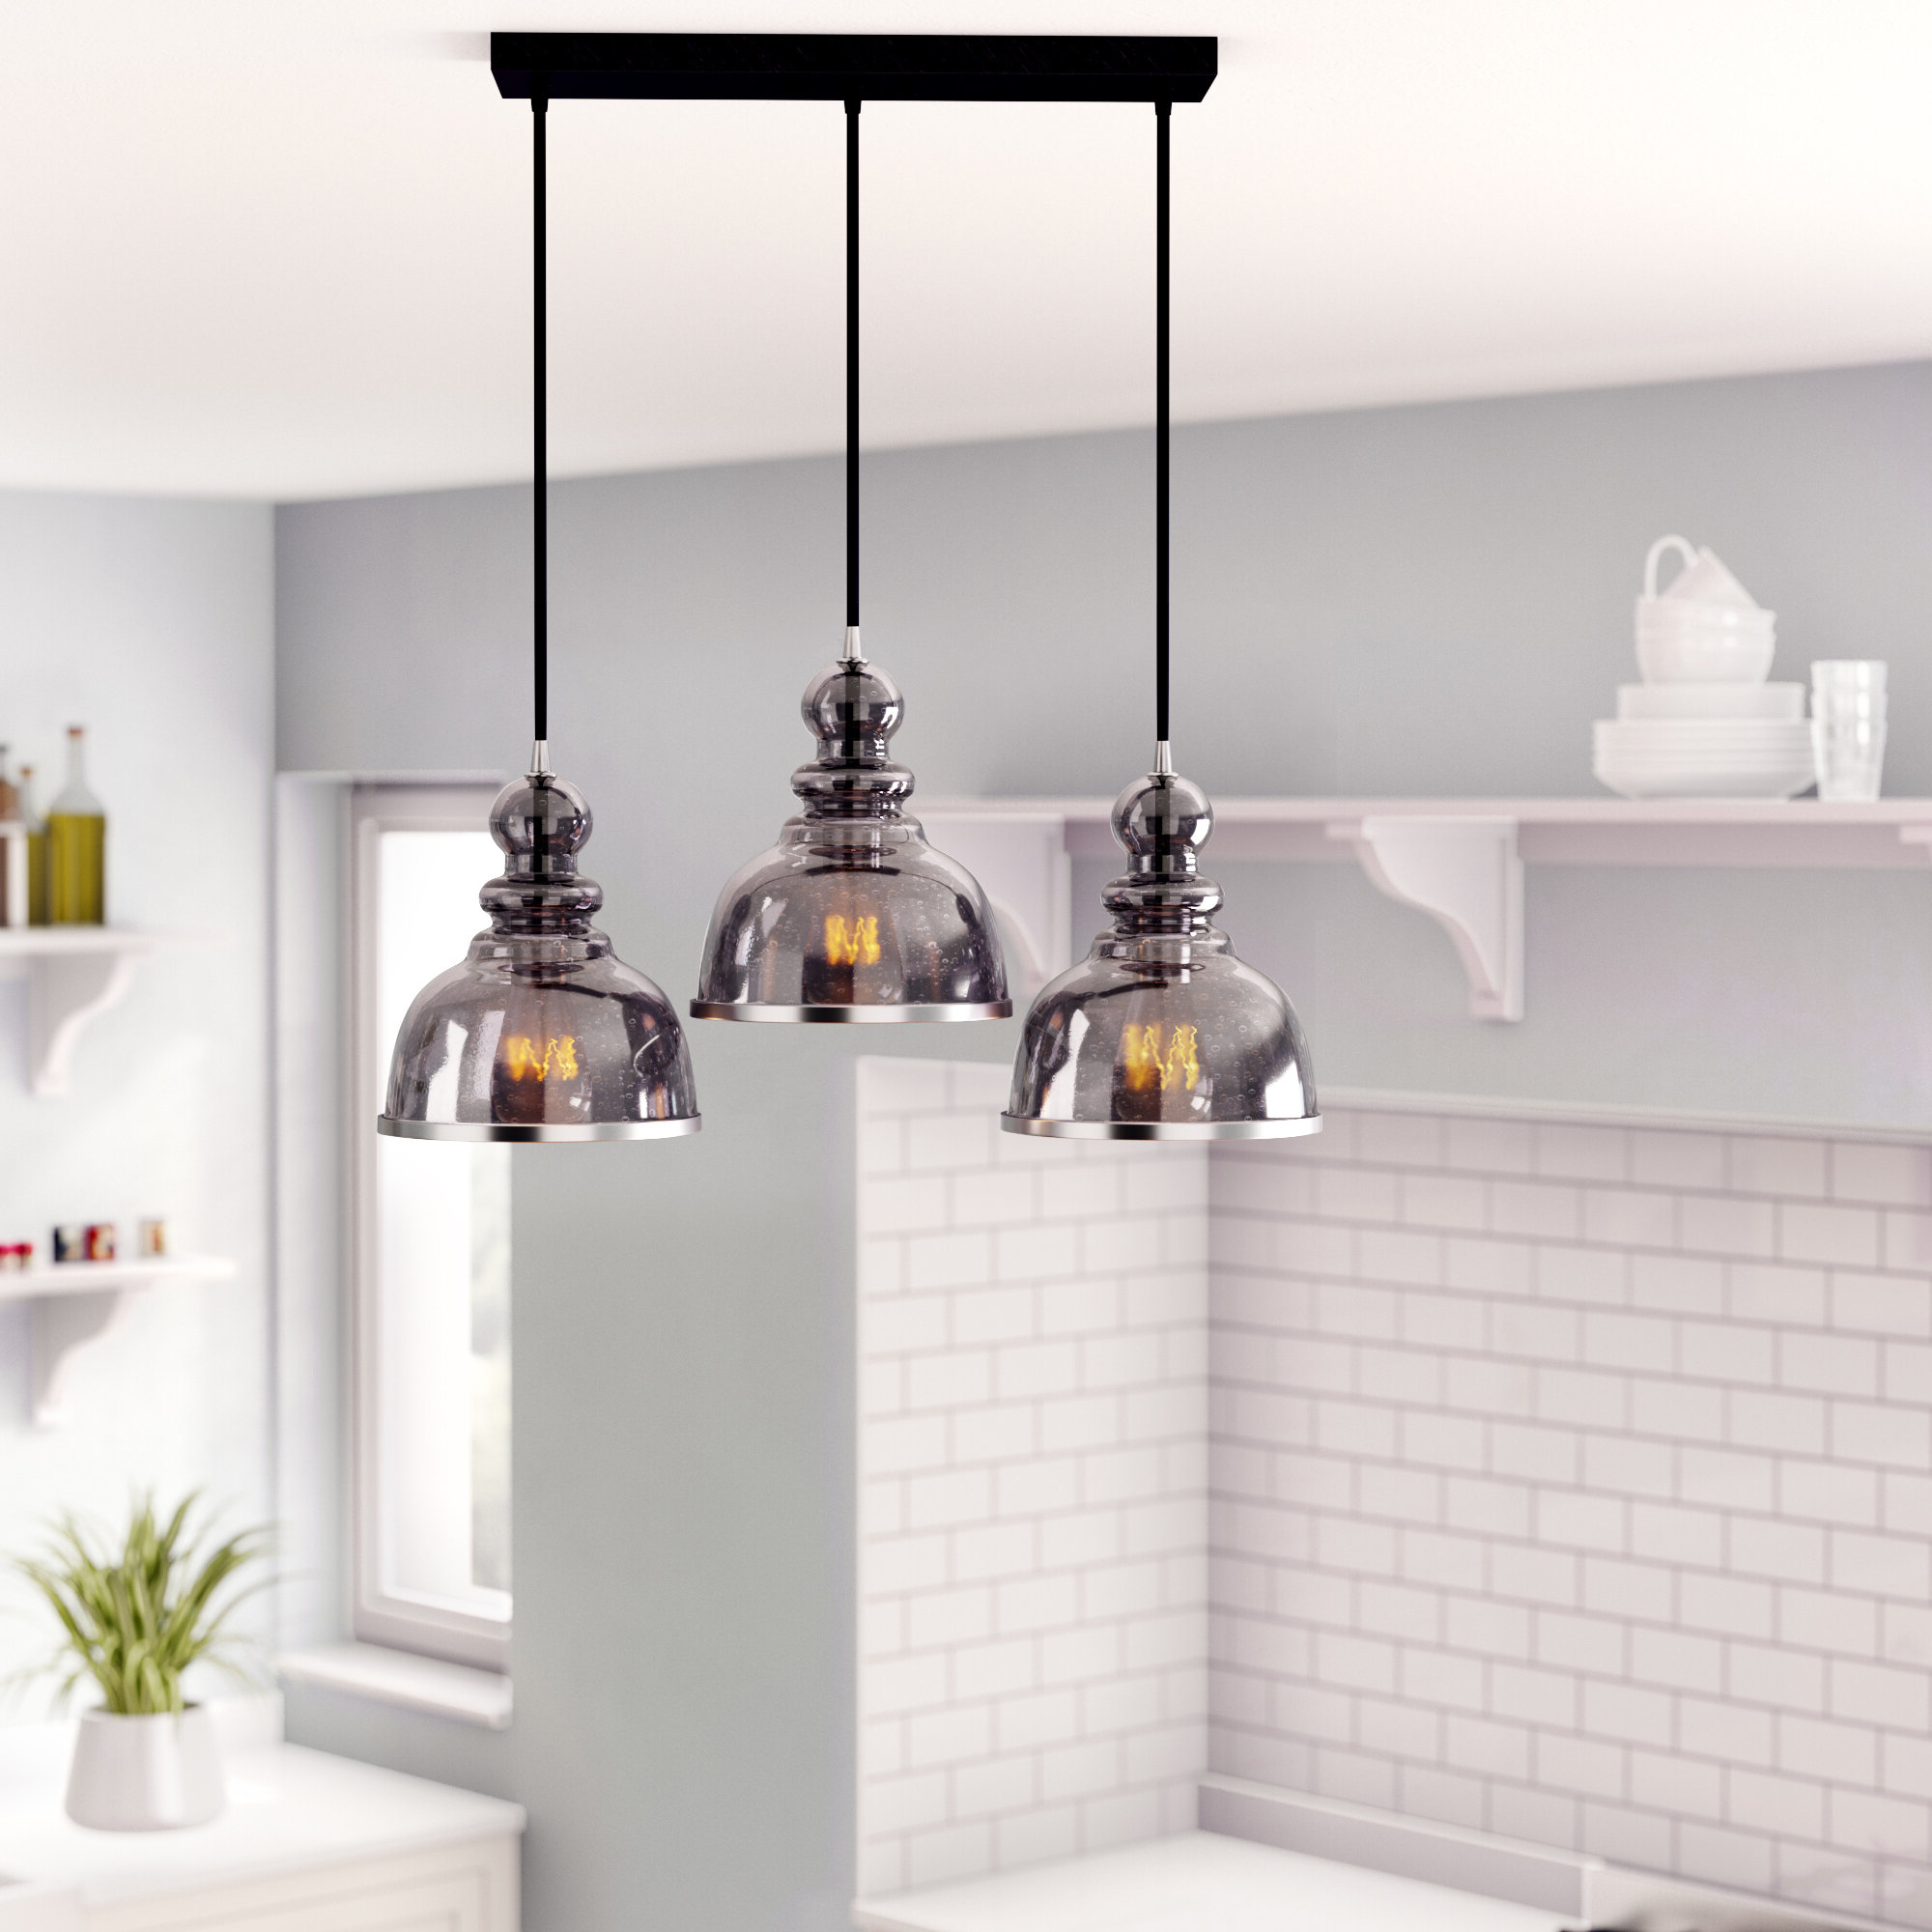 Widely Used Martinique 3 Light Kitchen Island Dome Pendants Regarding Kaci 3 Light Kitchen Island Pendant (View 5 of 25)